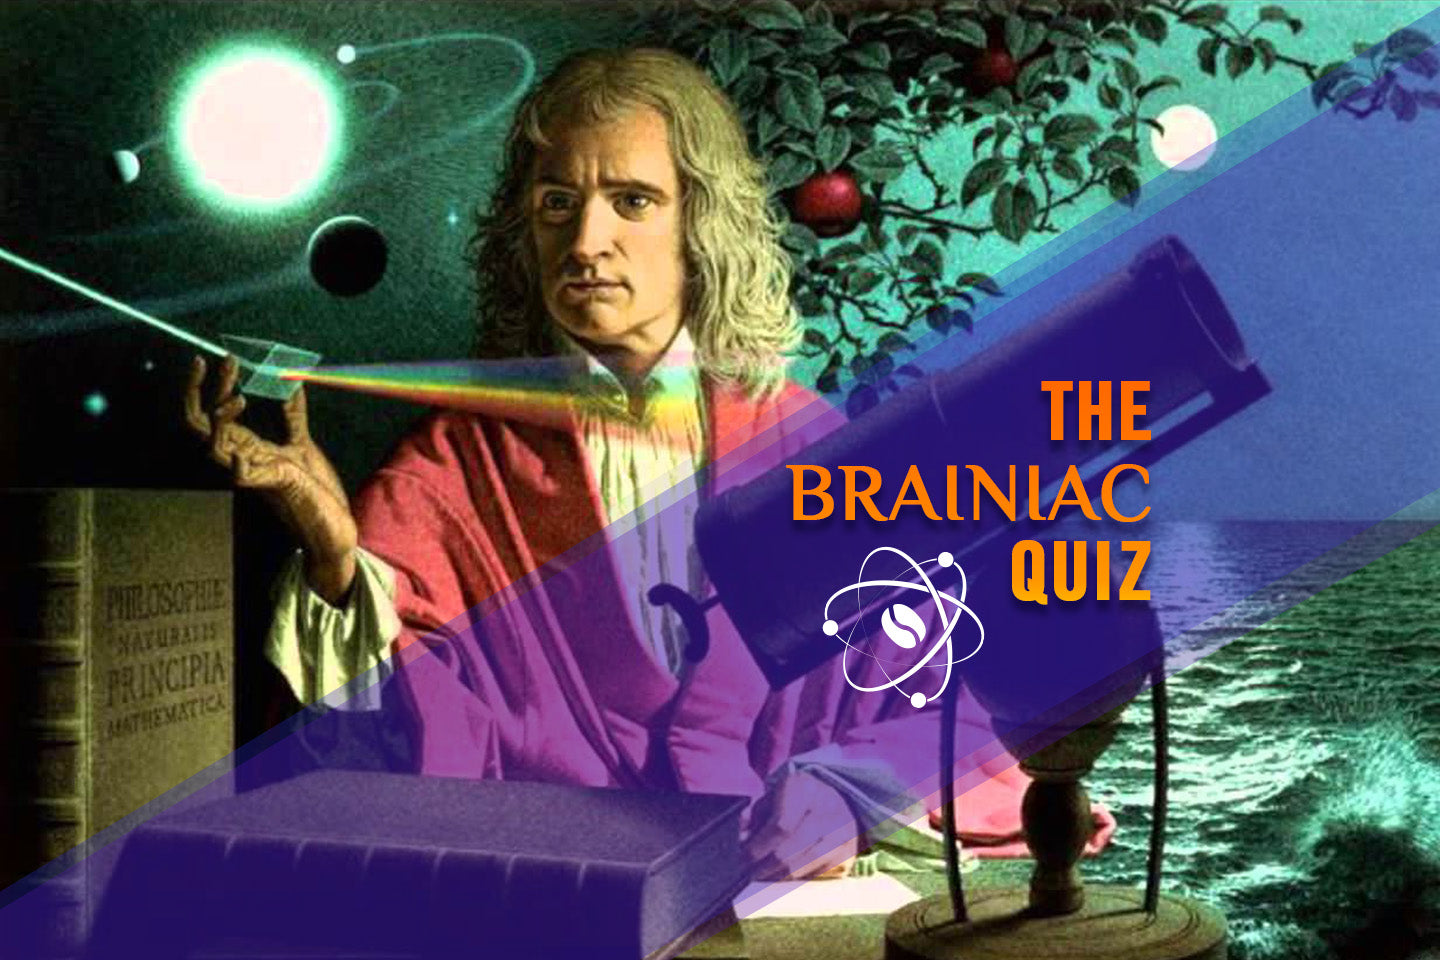 [Quiz] What Kind of Brainiac Are You?